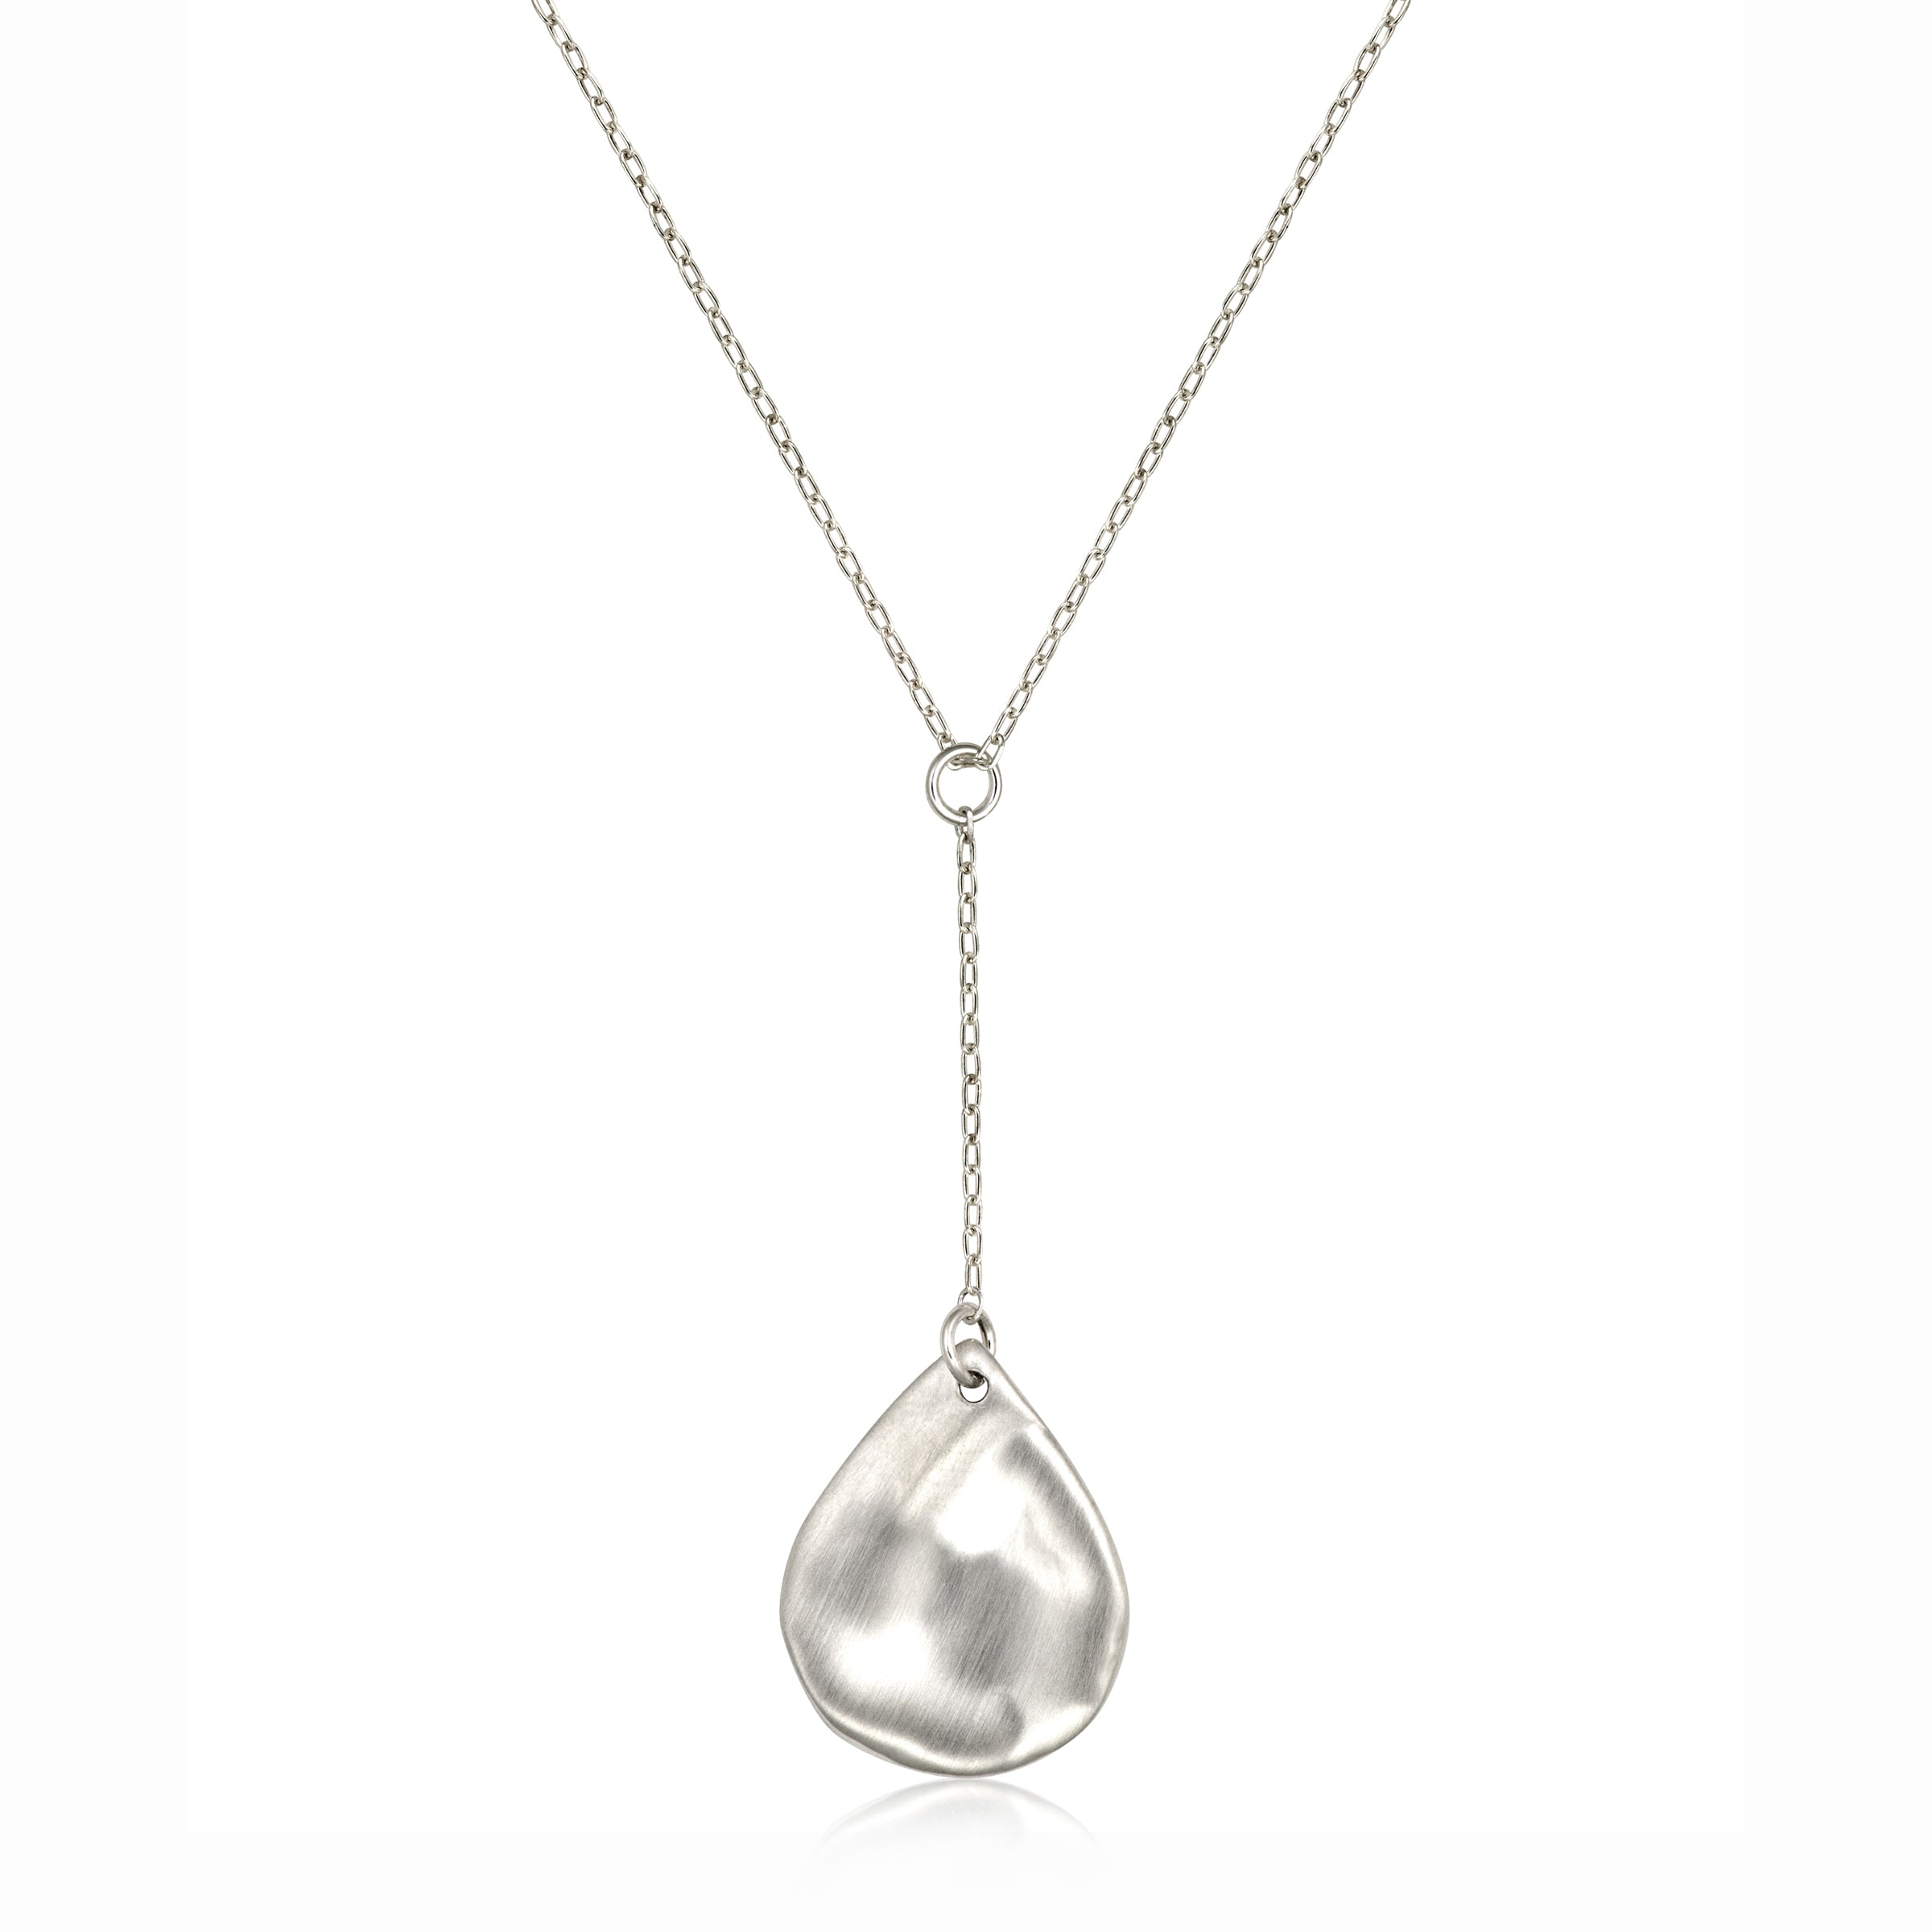 Matte Teardrop Lariat Style Necklace, Sterling Silver